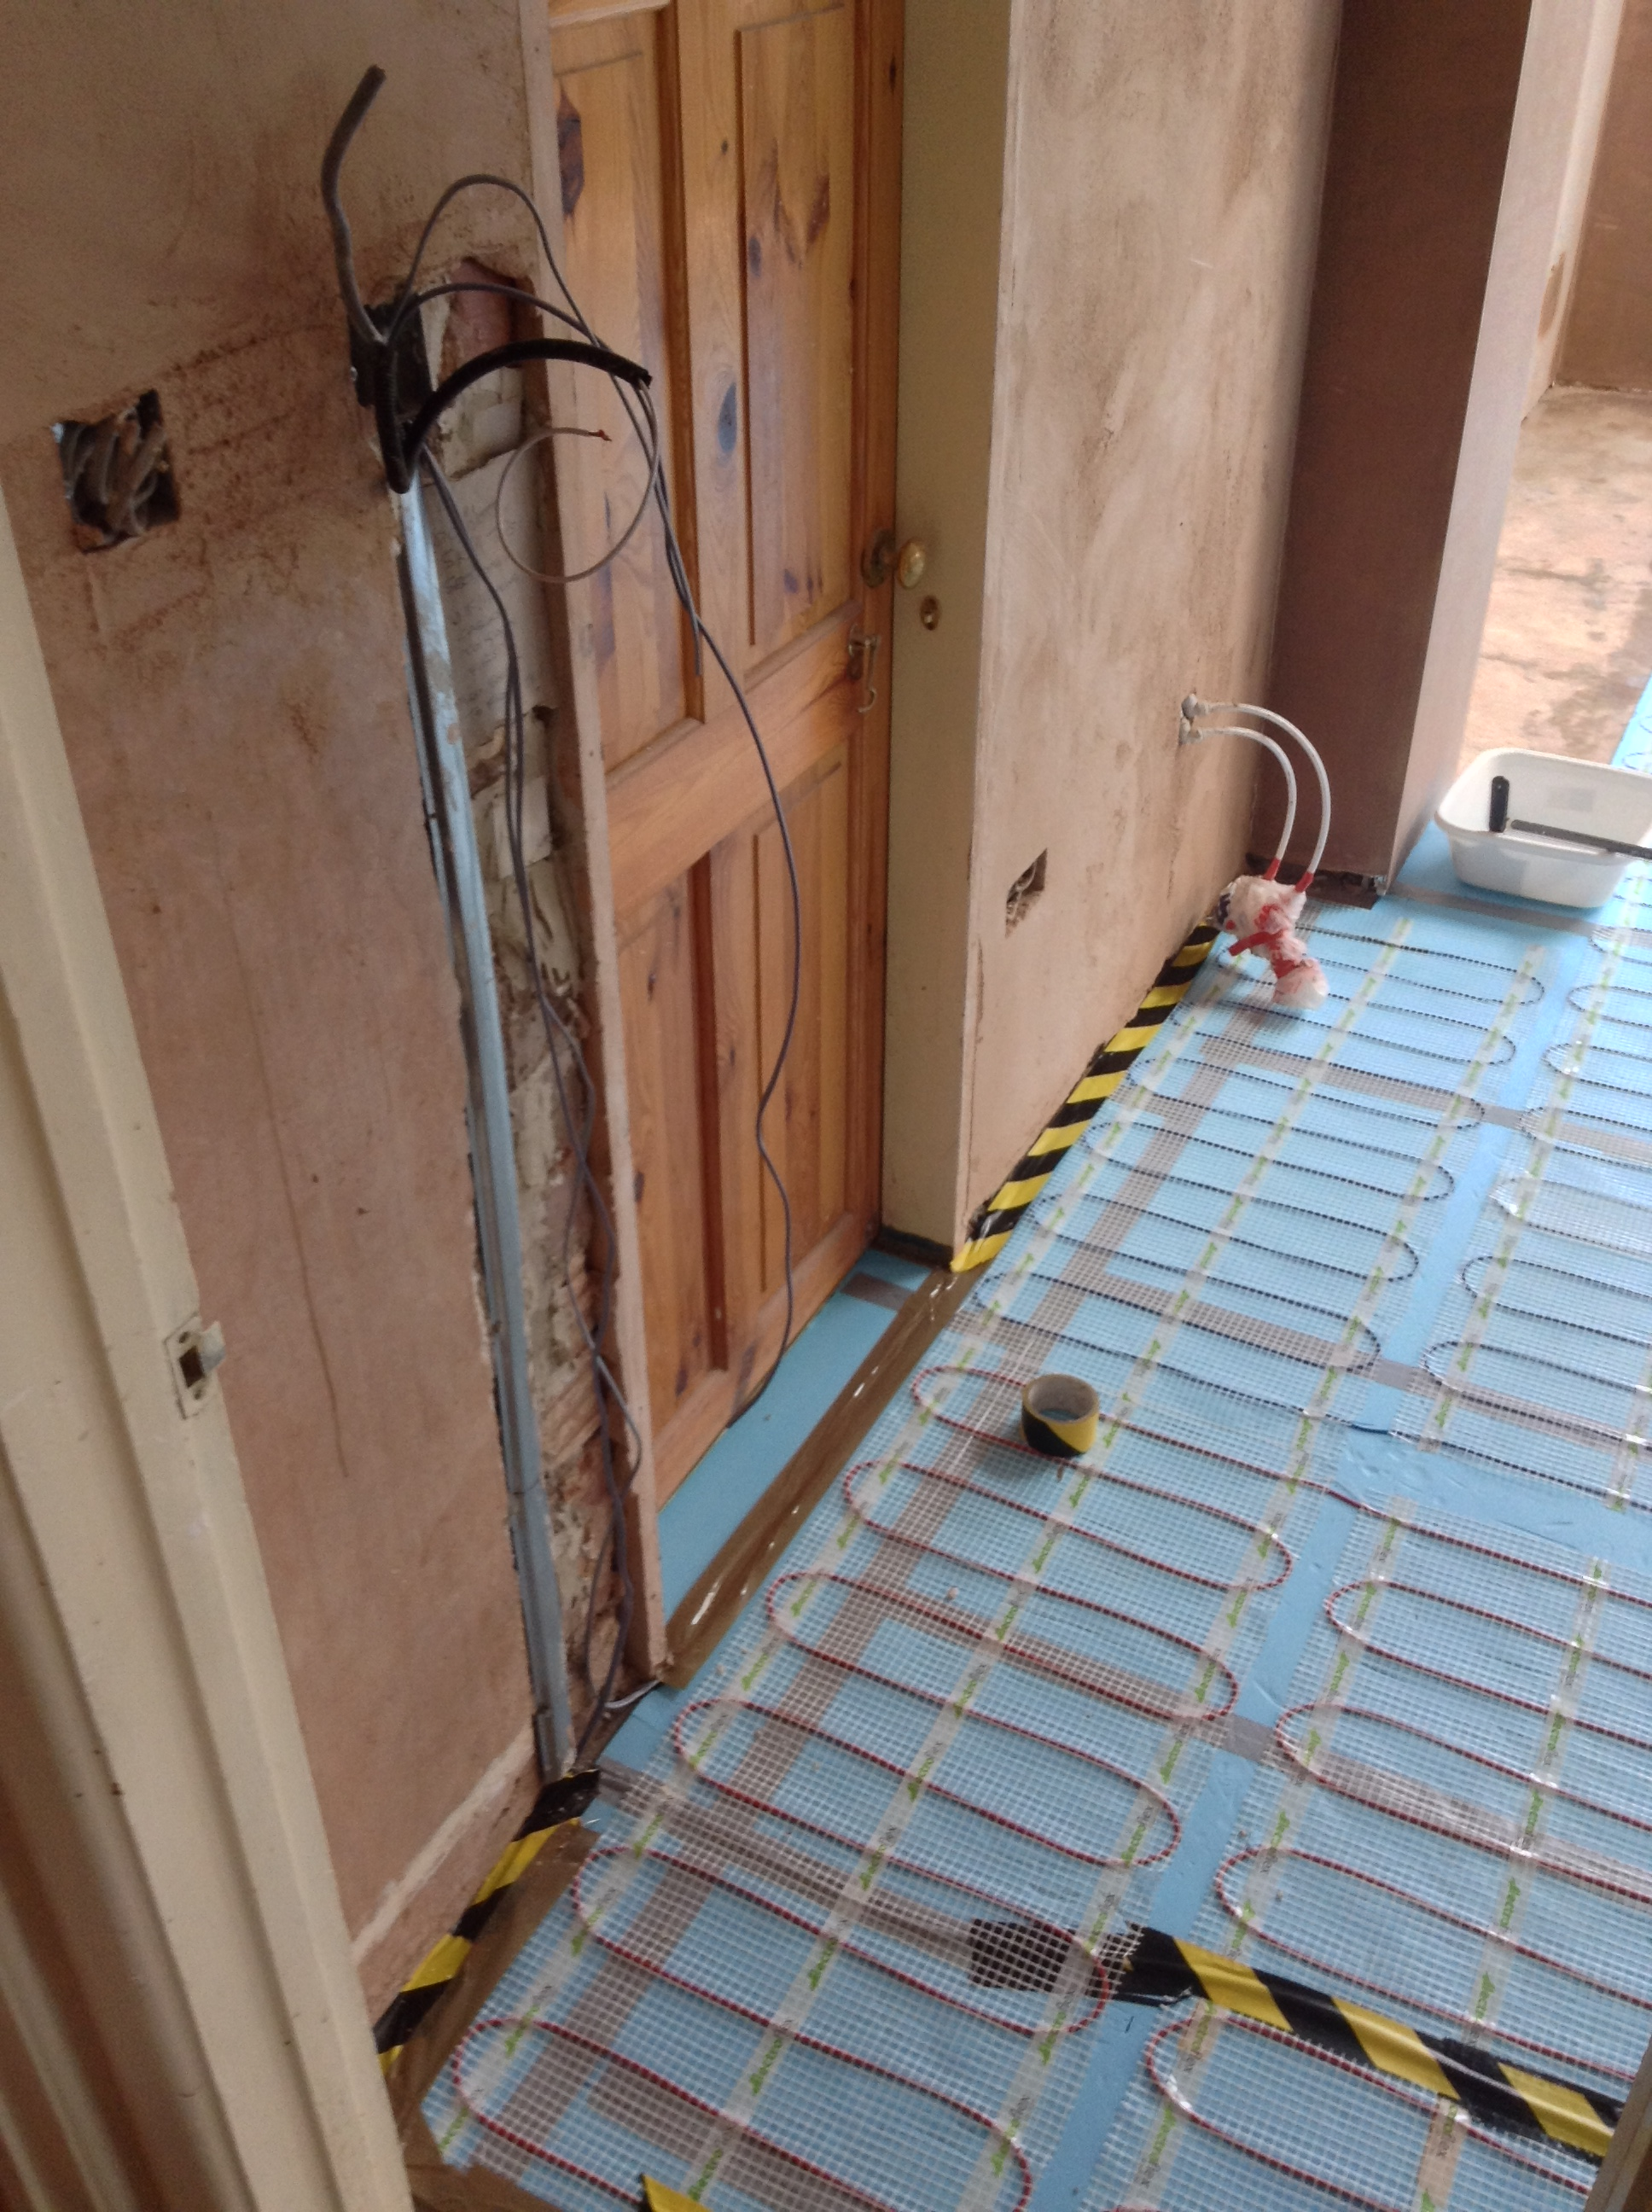 Wiring Electric Underfloor Heating Radio Wiring Diagram - Under floorboard heating